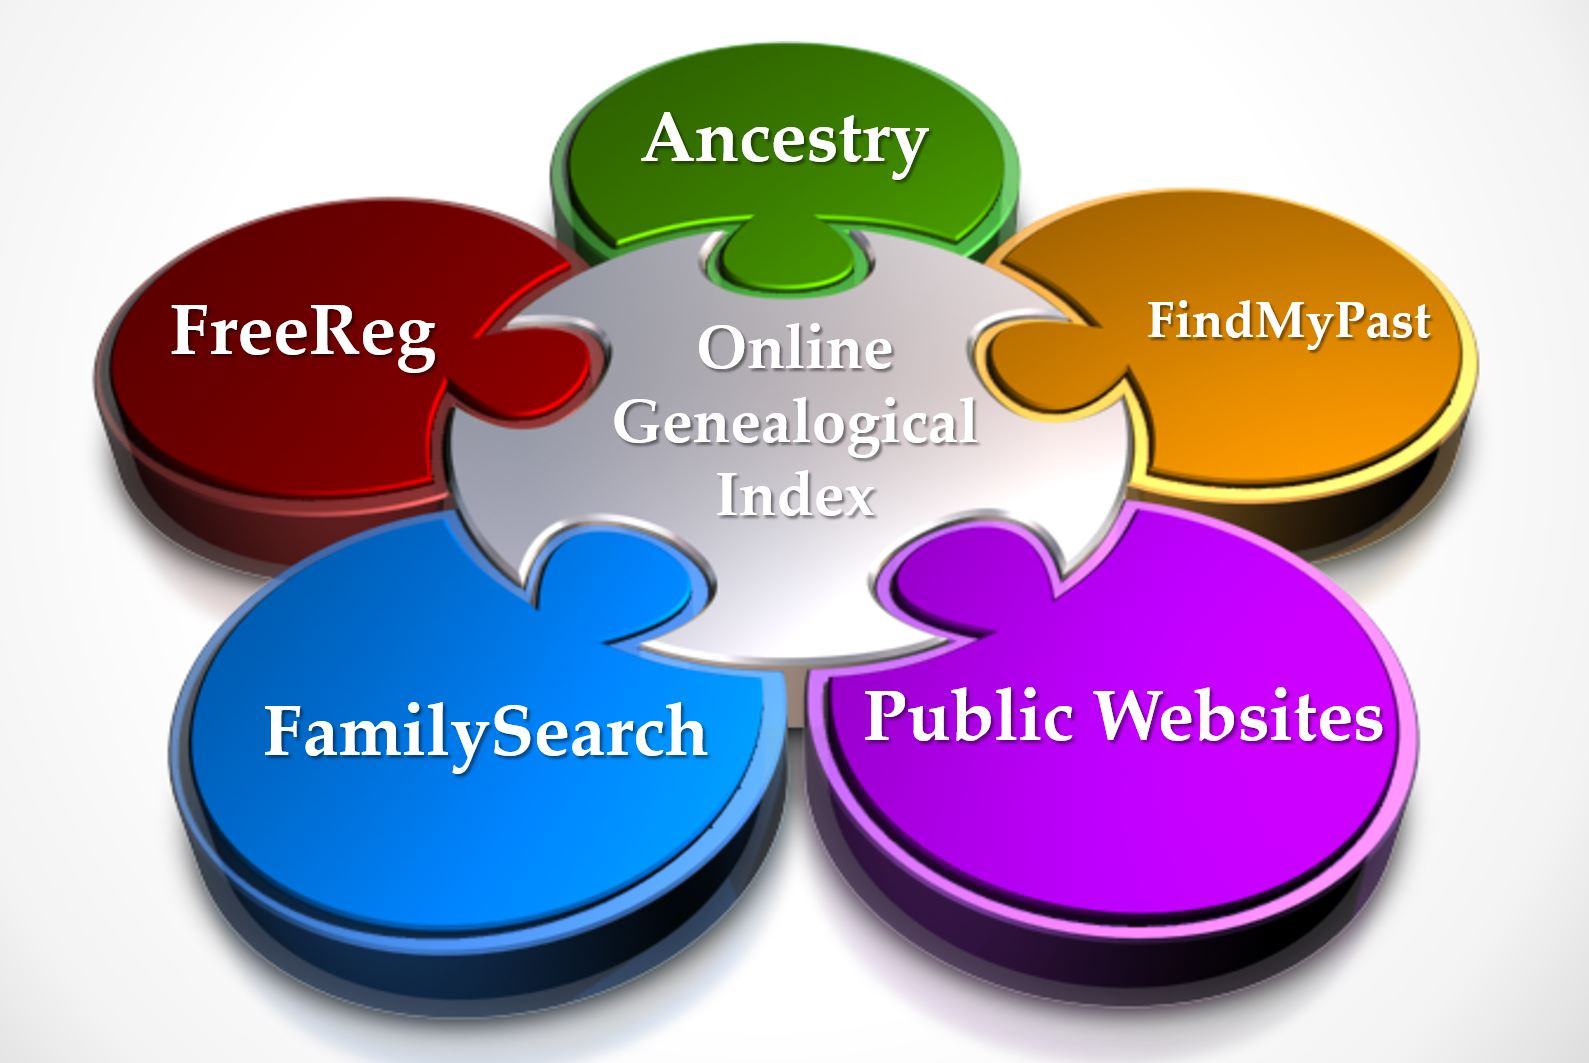 Online Genealogical Index